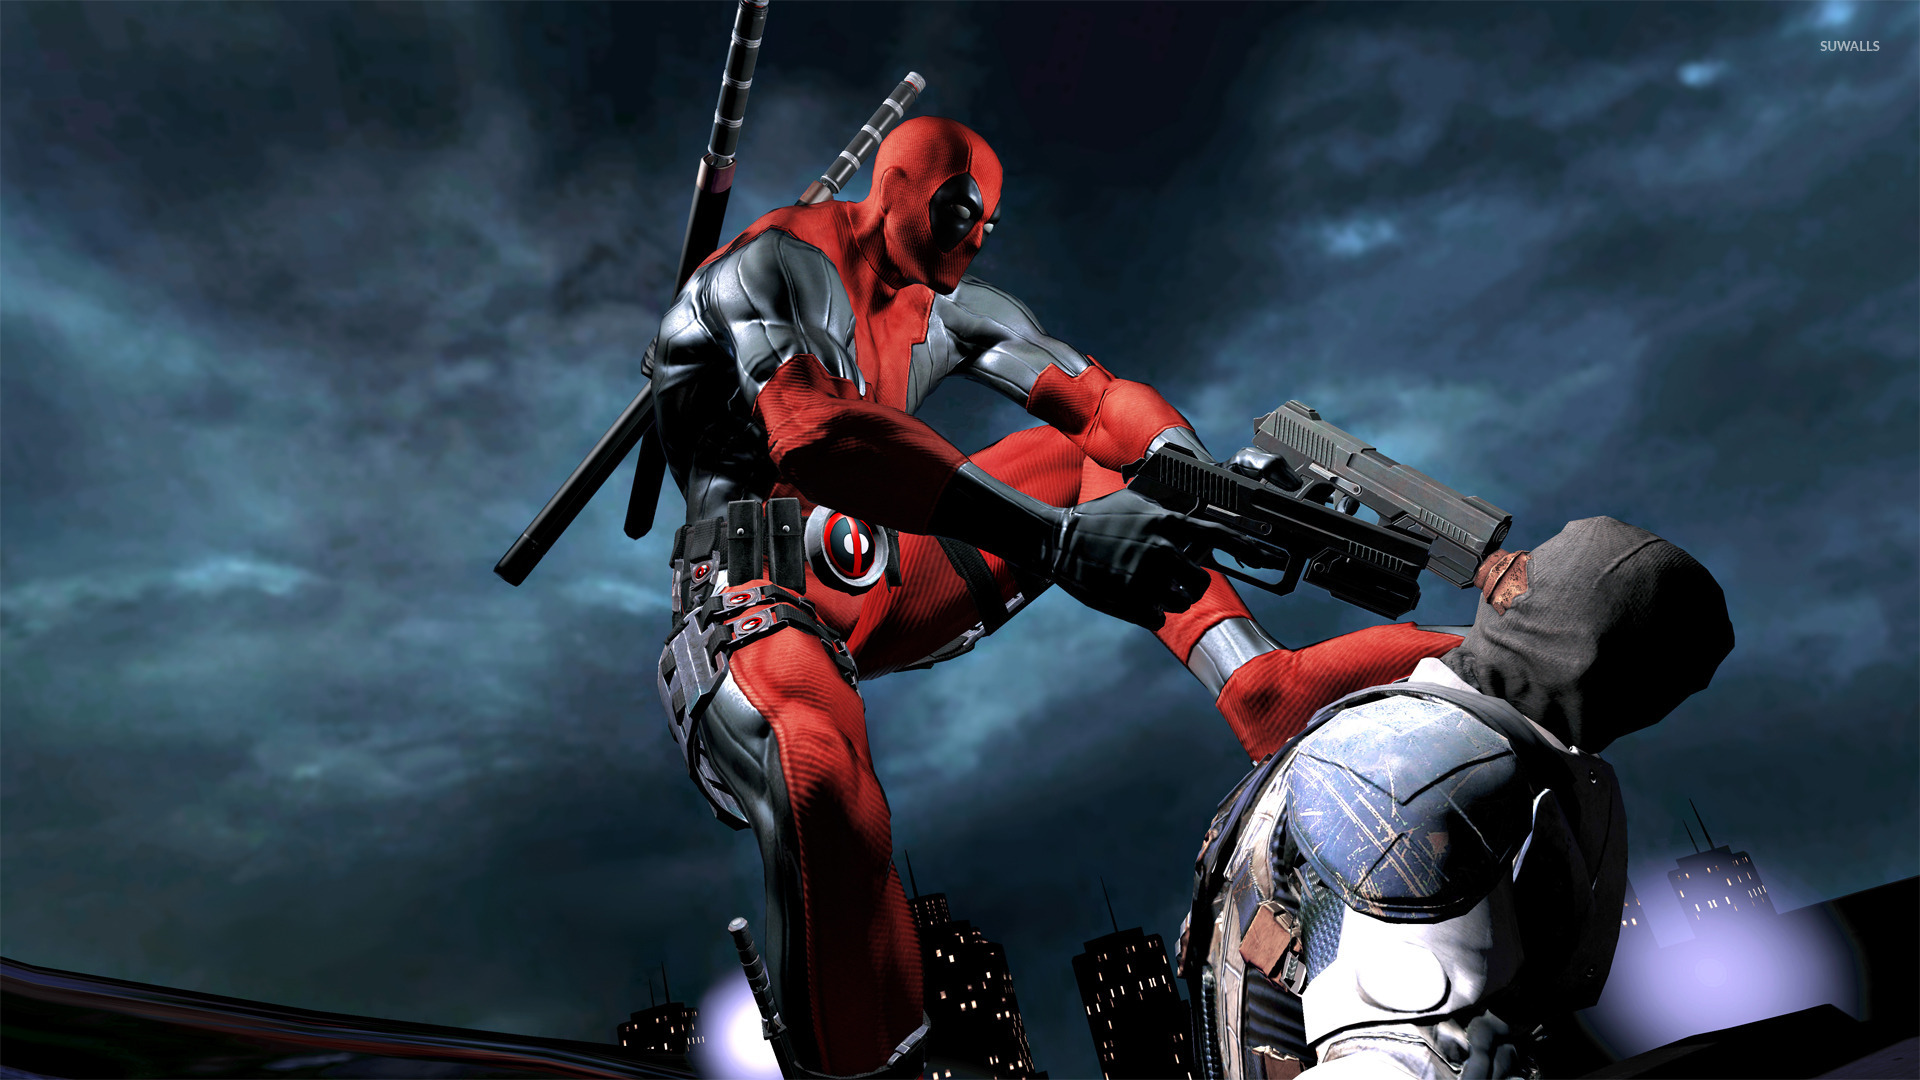 10 Most Popular 4k Gaming Wallpaper Full Hd 1920 1080 For: Deadpool [10] Wallpaper